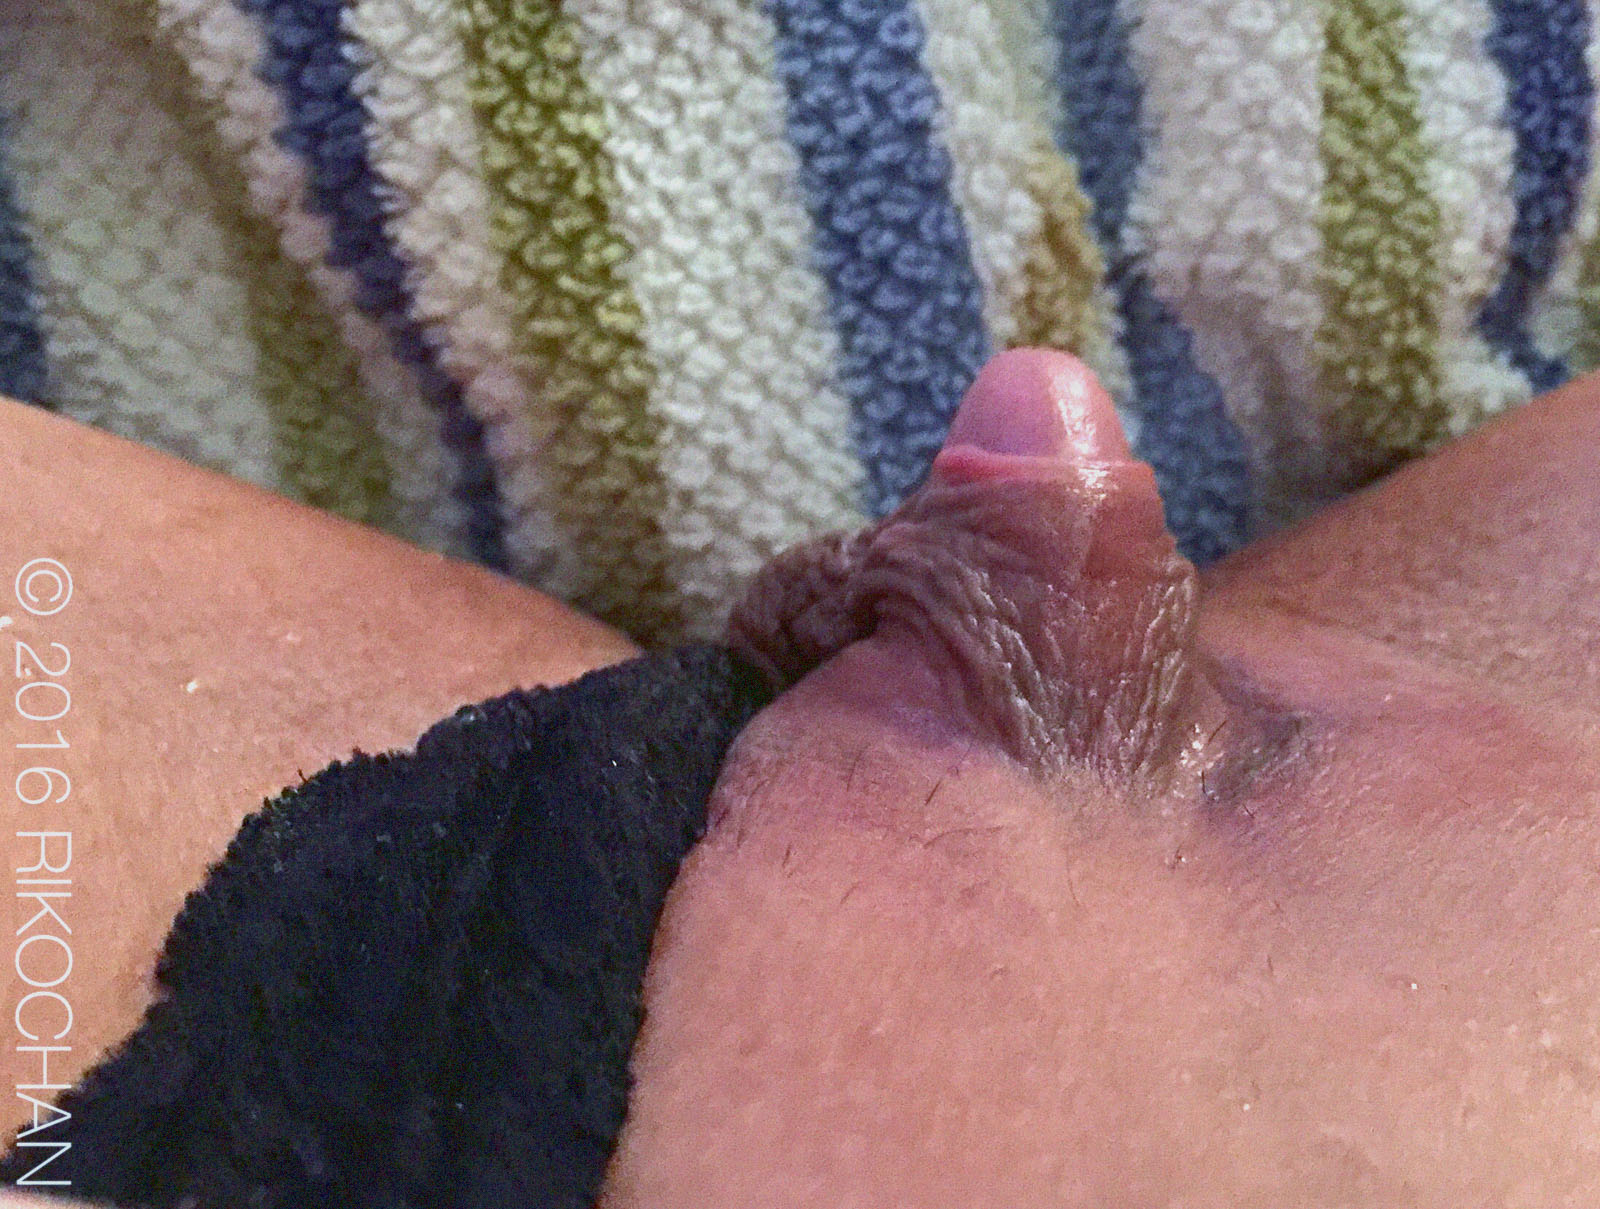 Has really girls eating big clit pussy such